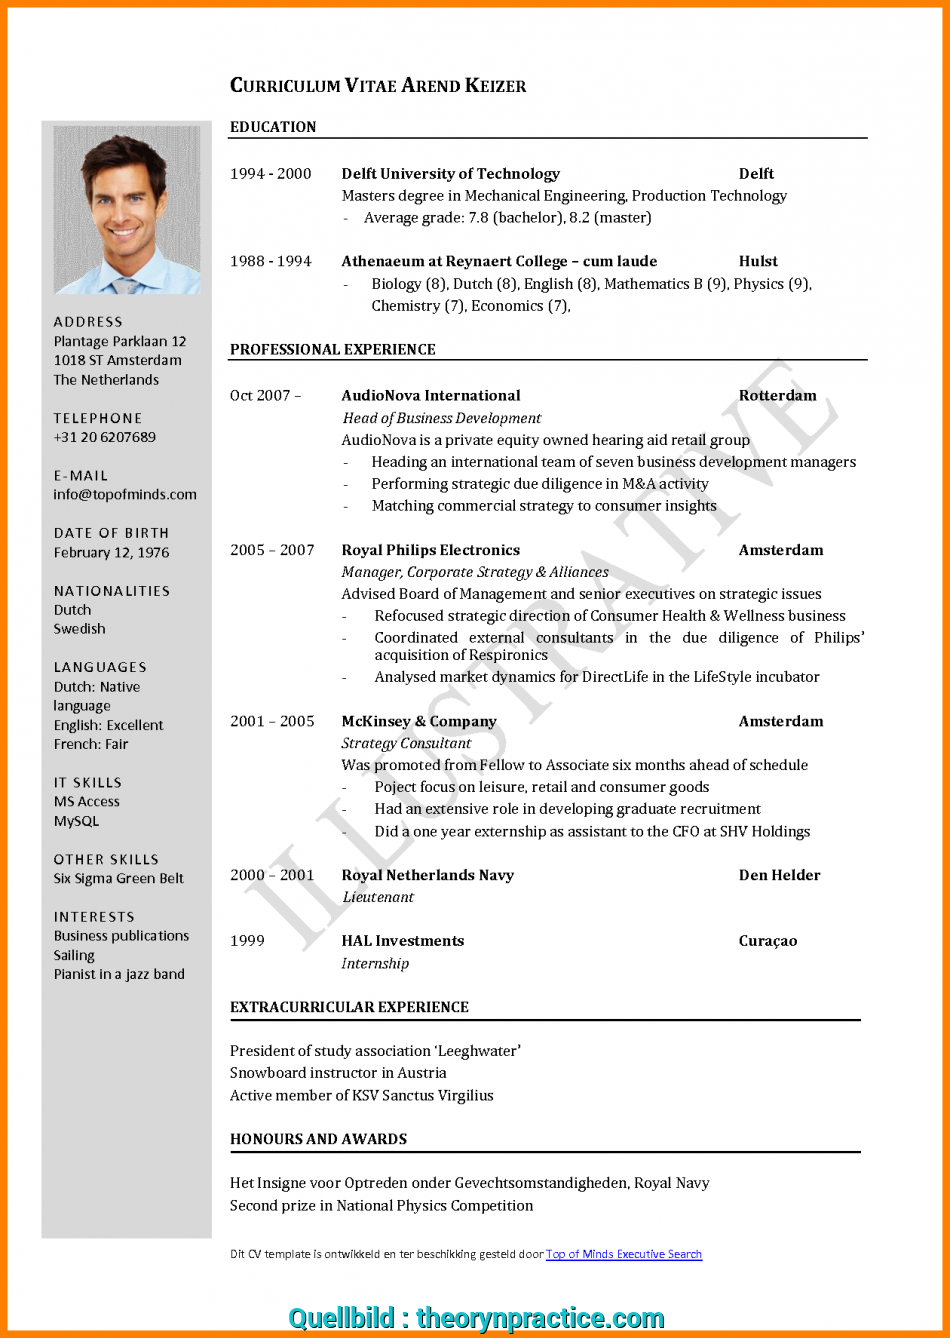 Liebling Cv Layout Template Word .B822D9B555Cd2691394B61Ac220Ed095.Png, Lebenslauf Layout, Word